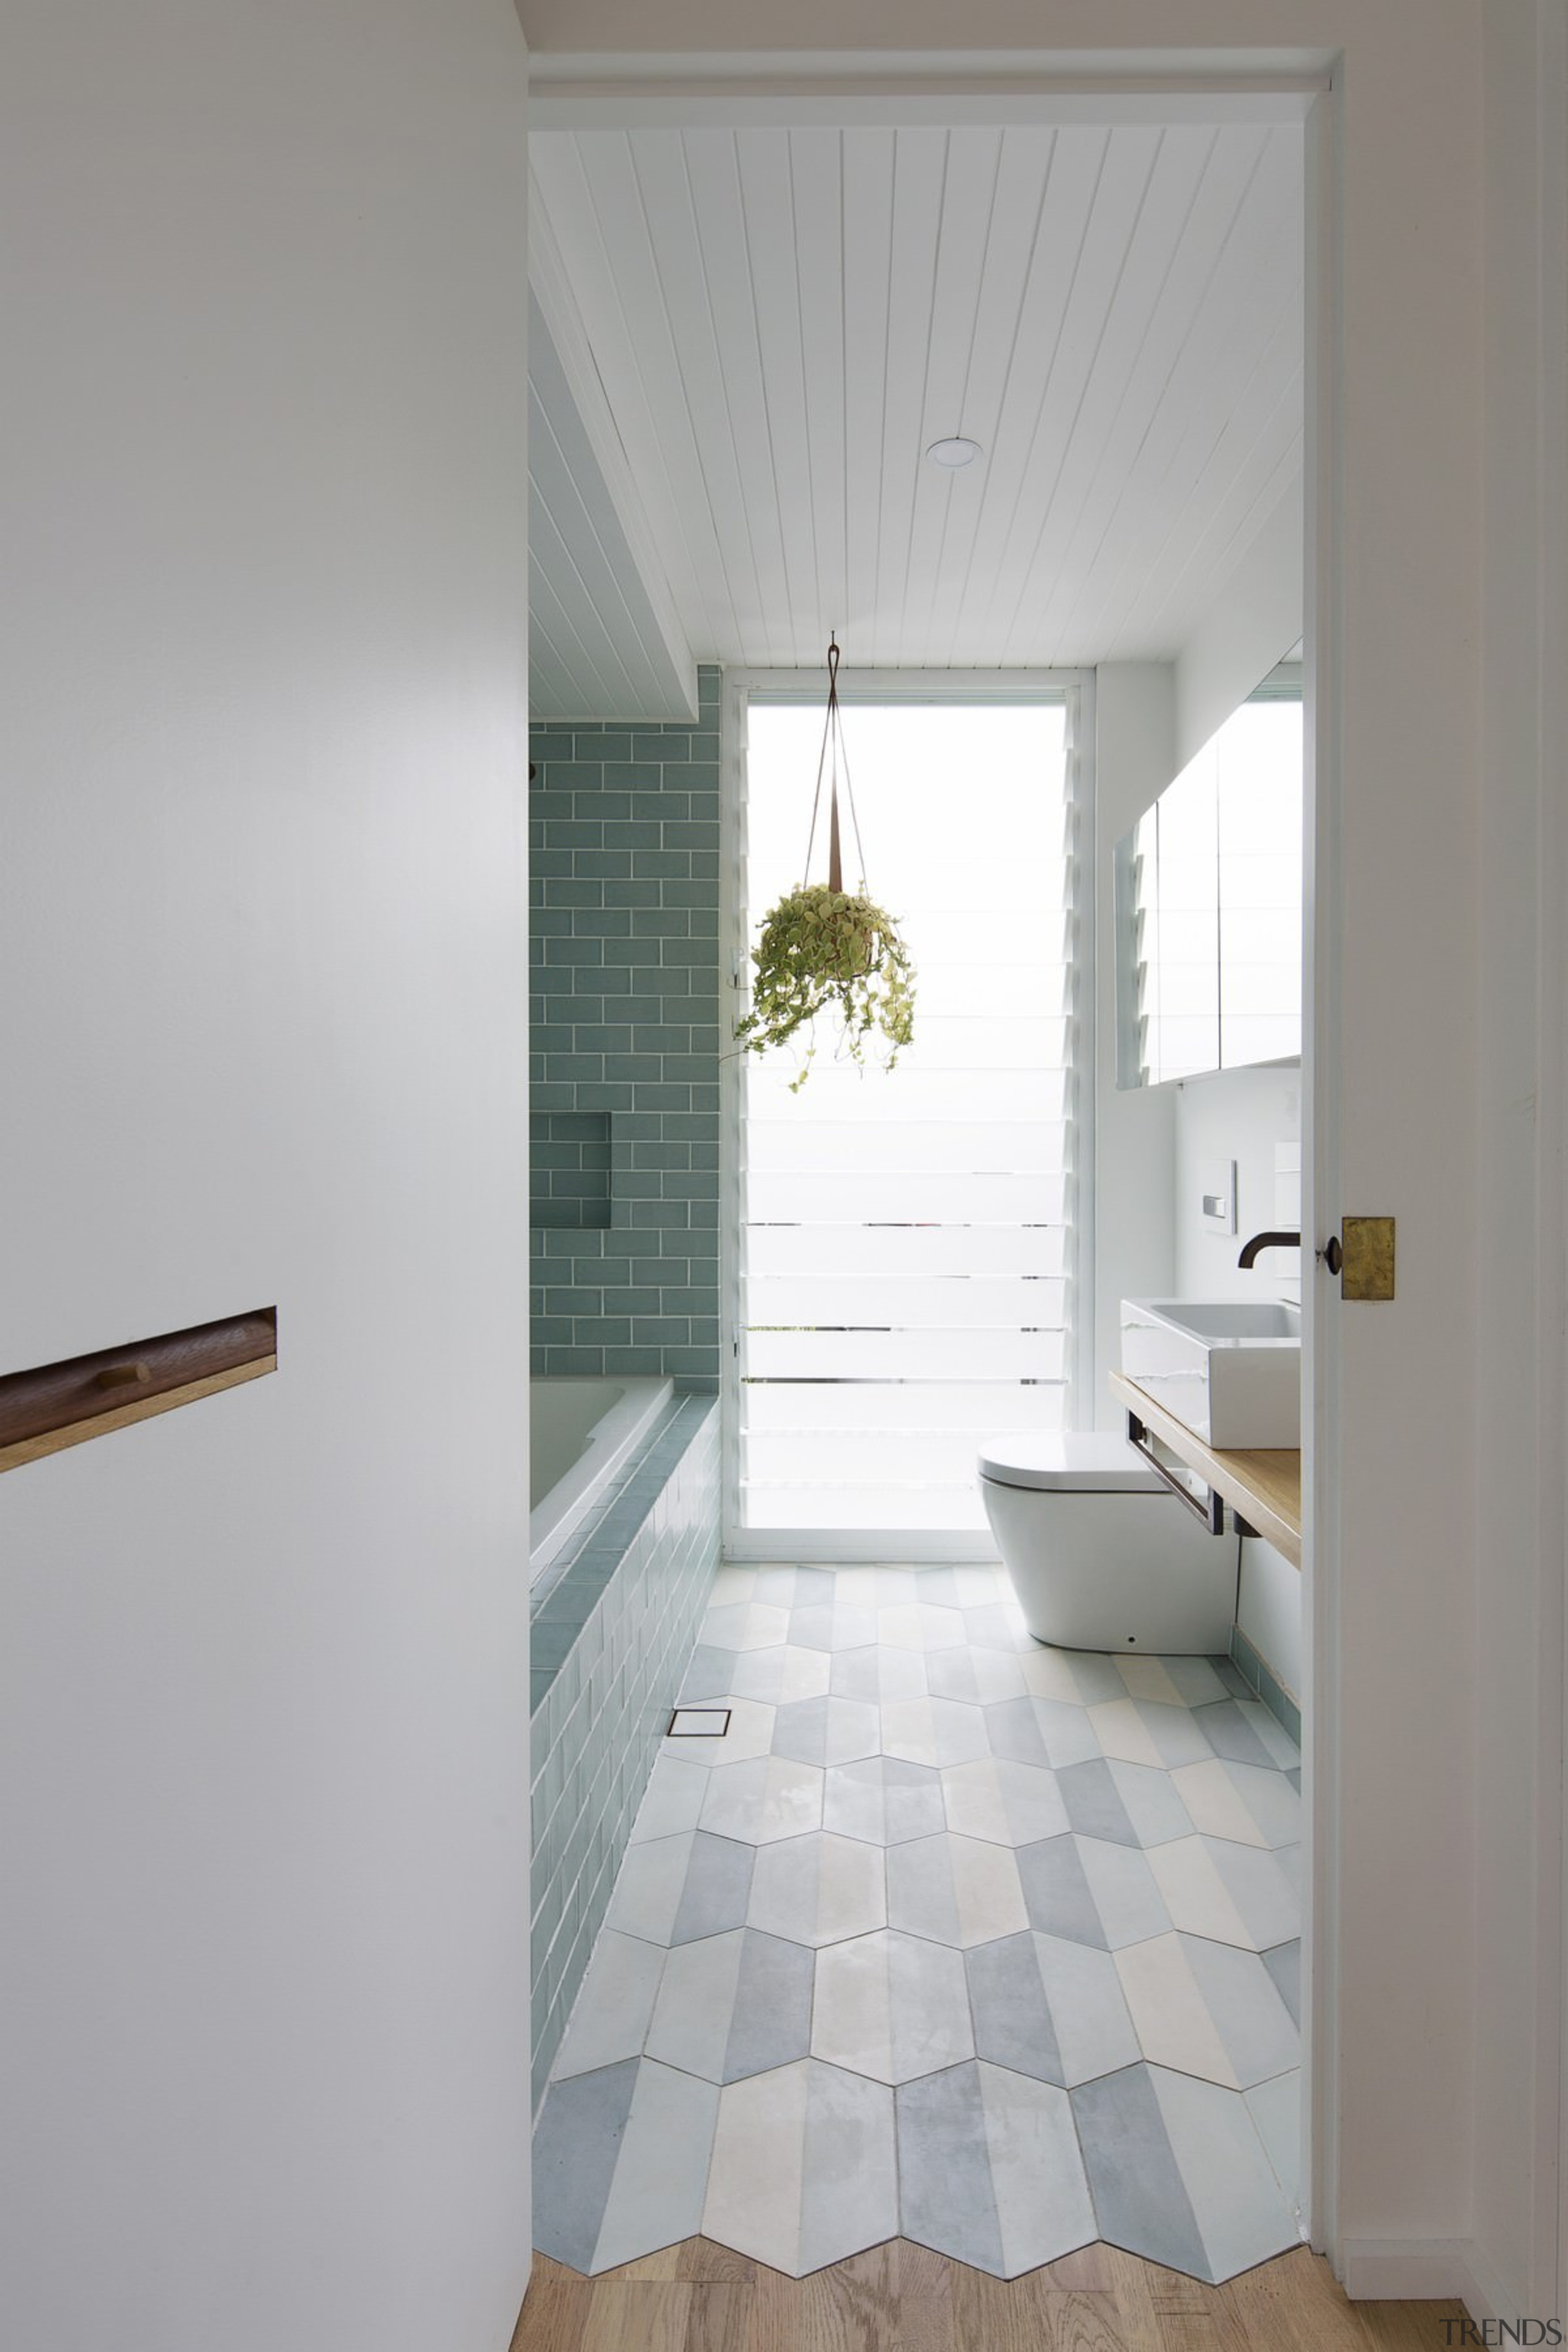 Breaking from convention, the tiles in this bathroom architecture, bathroom, ceiling, daylighting, floor, flooring, home, house, interior design, laminate flooring, room, tile, wall, window, wood flooring, gray